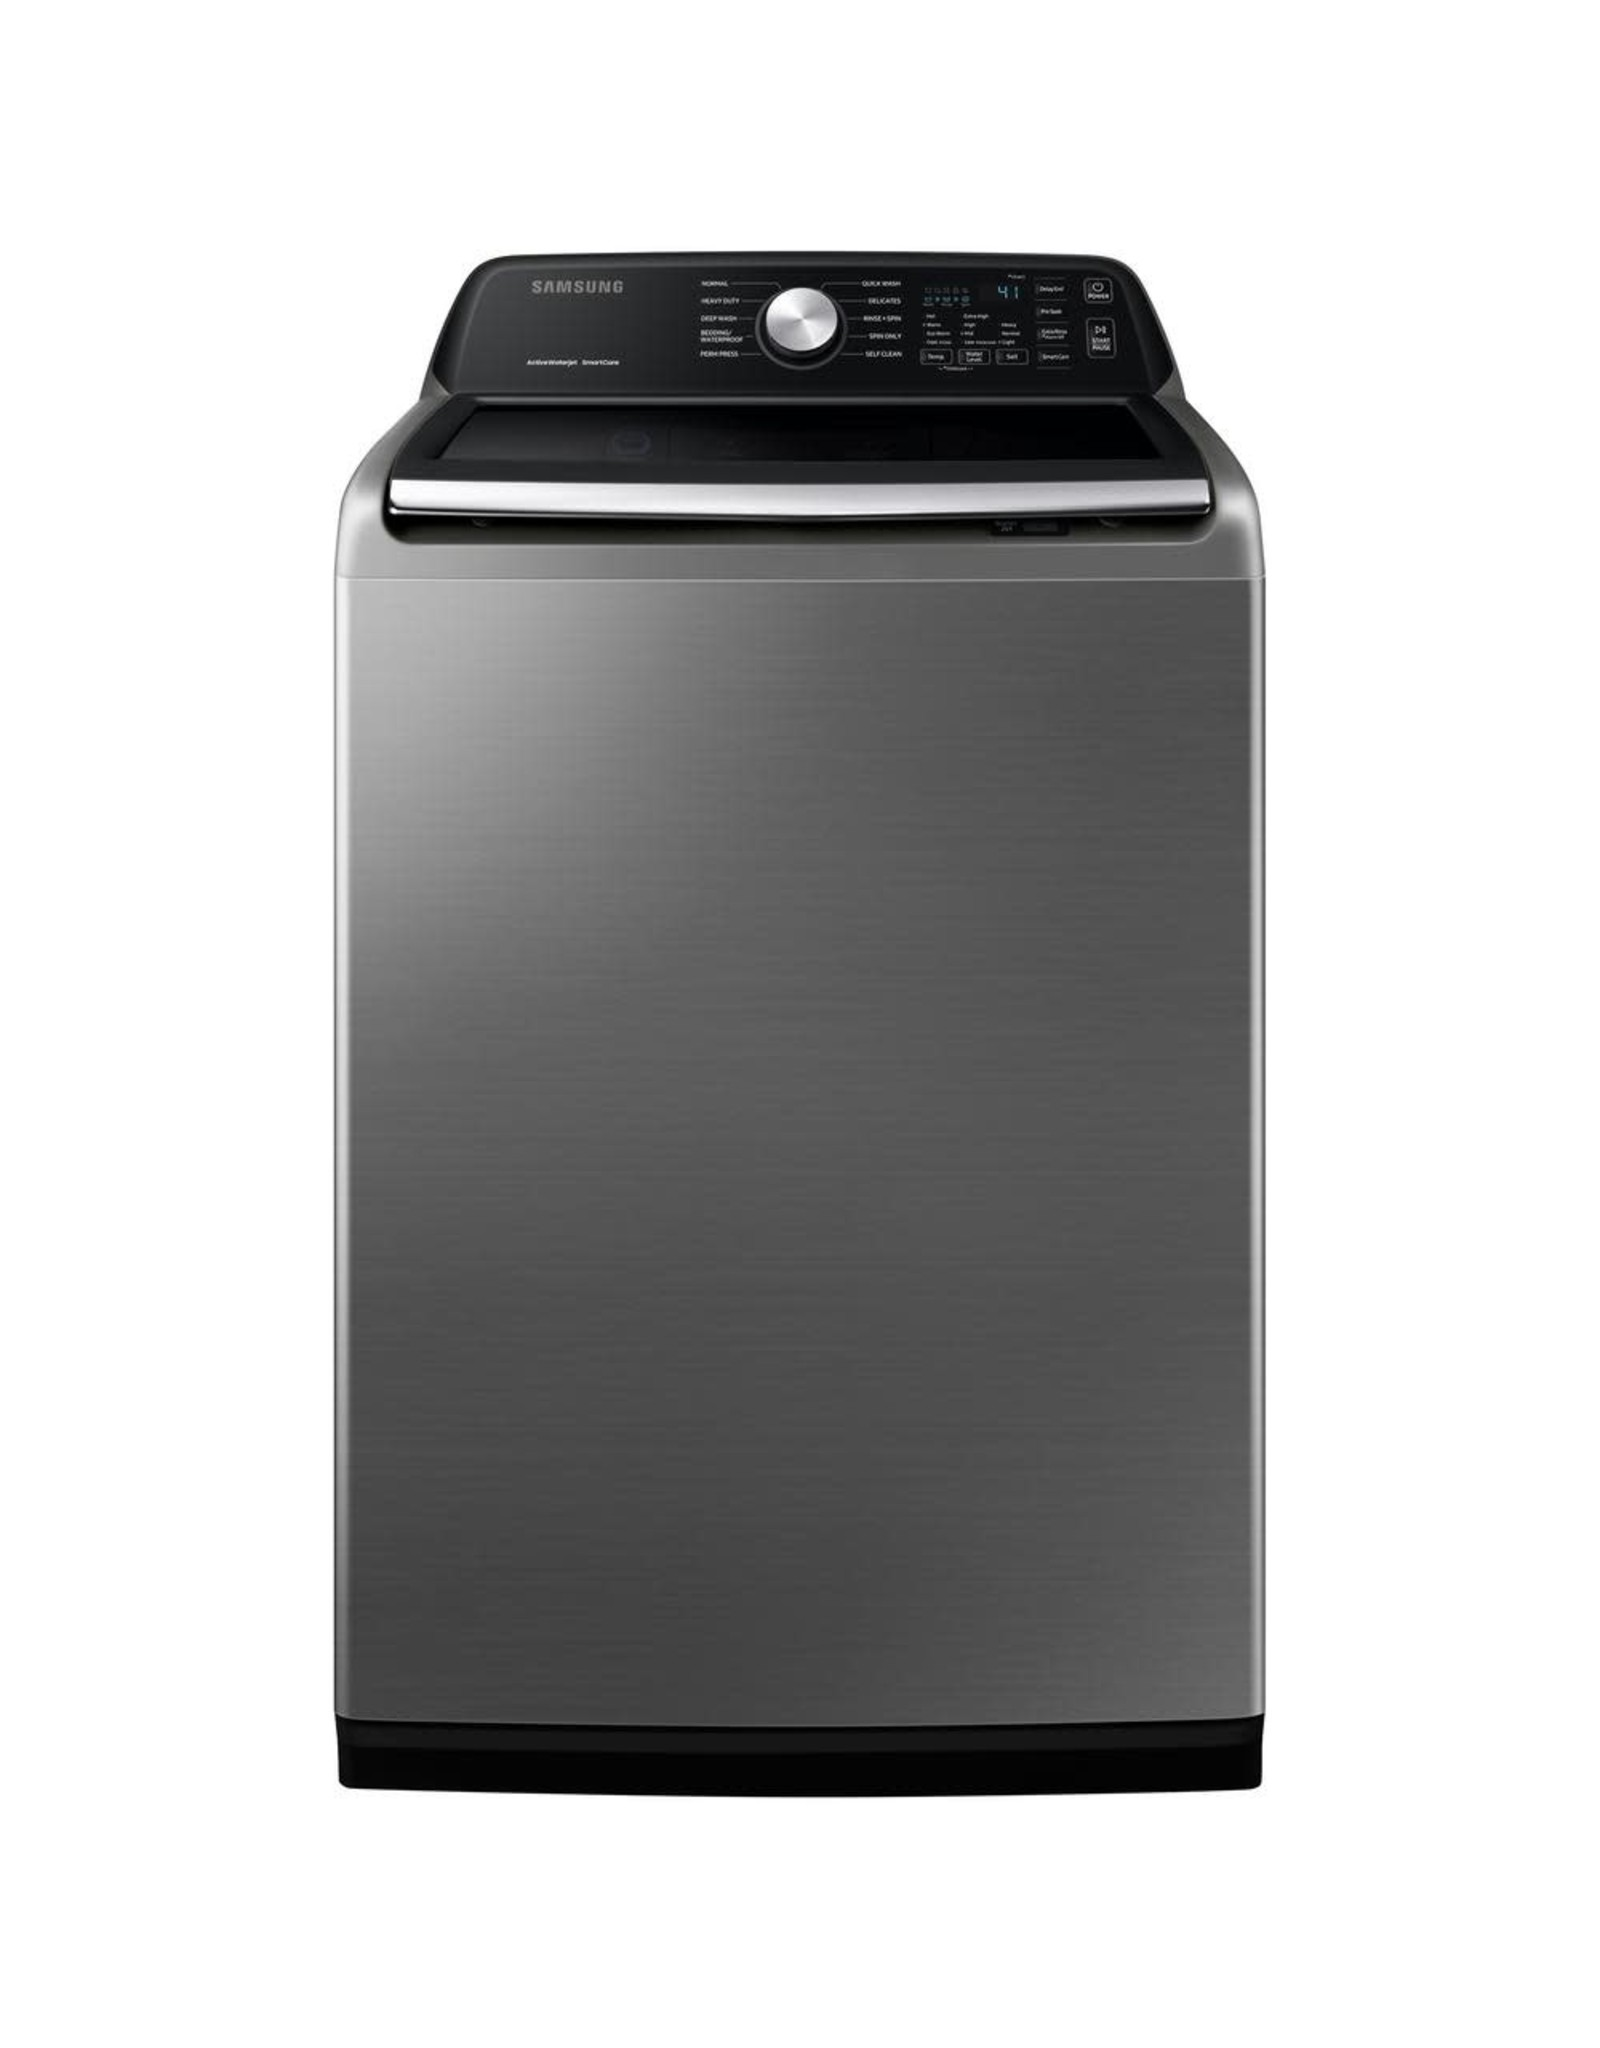 SAMSUNG WA45T3400AP 27 in. 4.5 cu. ft. High-Efficiency Platinum Top Load Washing Machine with Active Water Jet